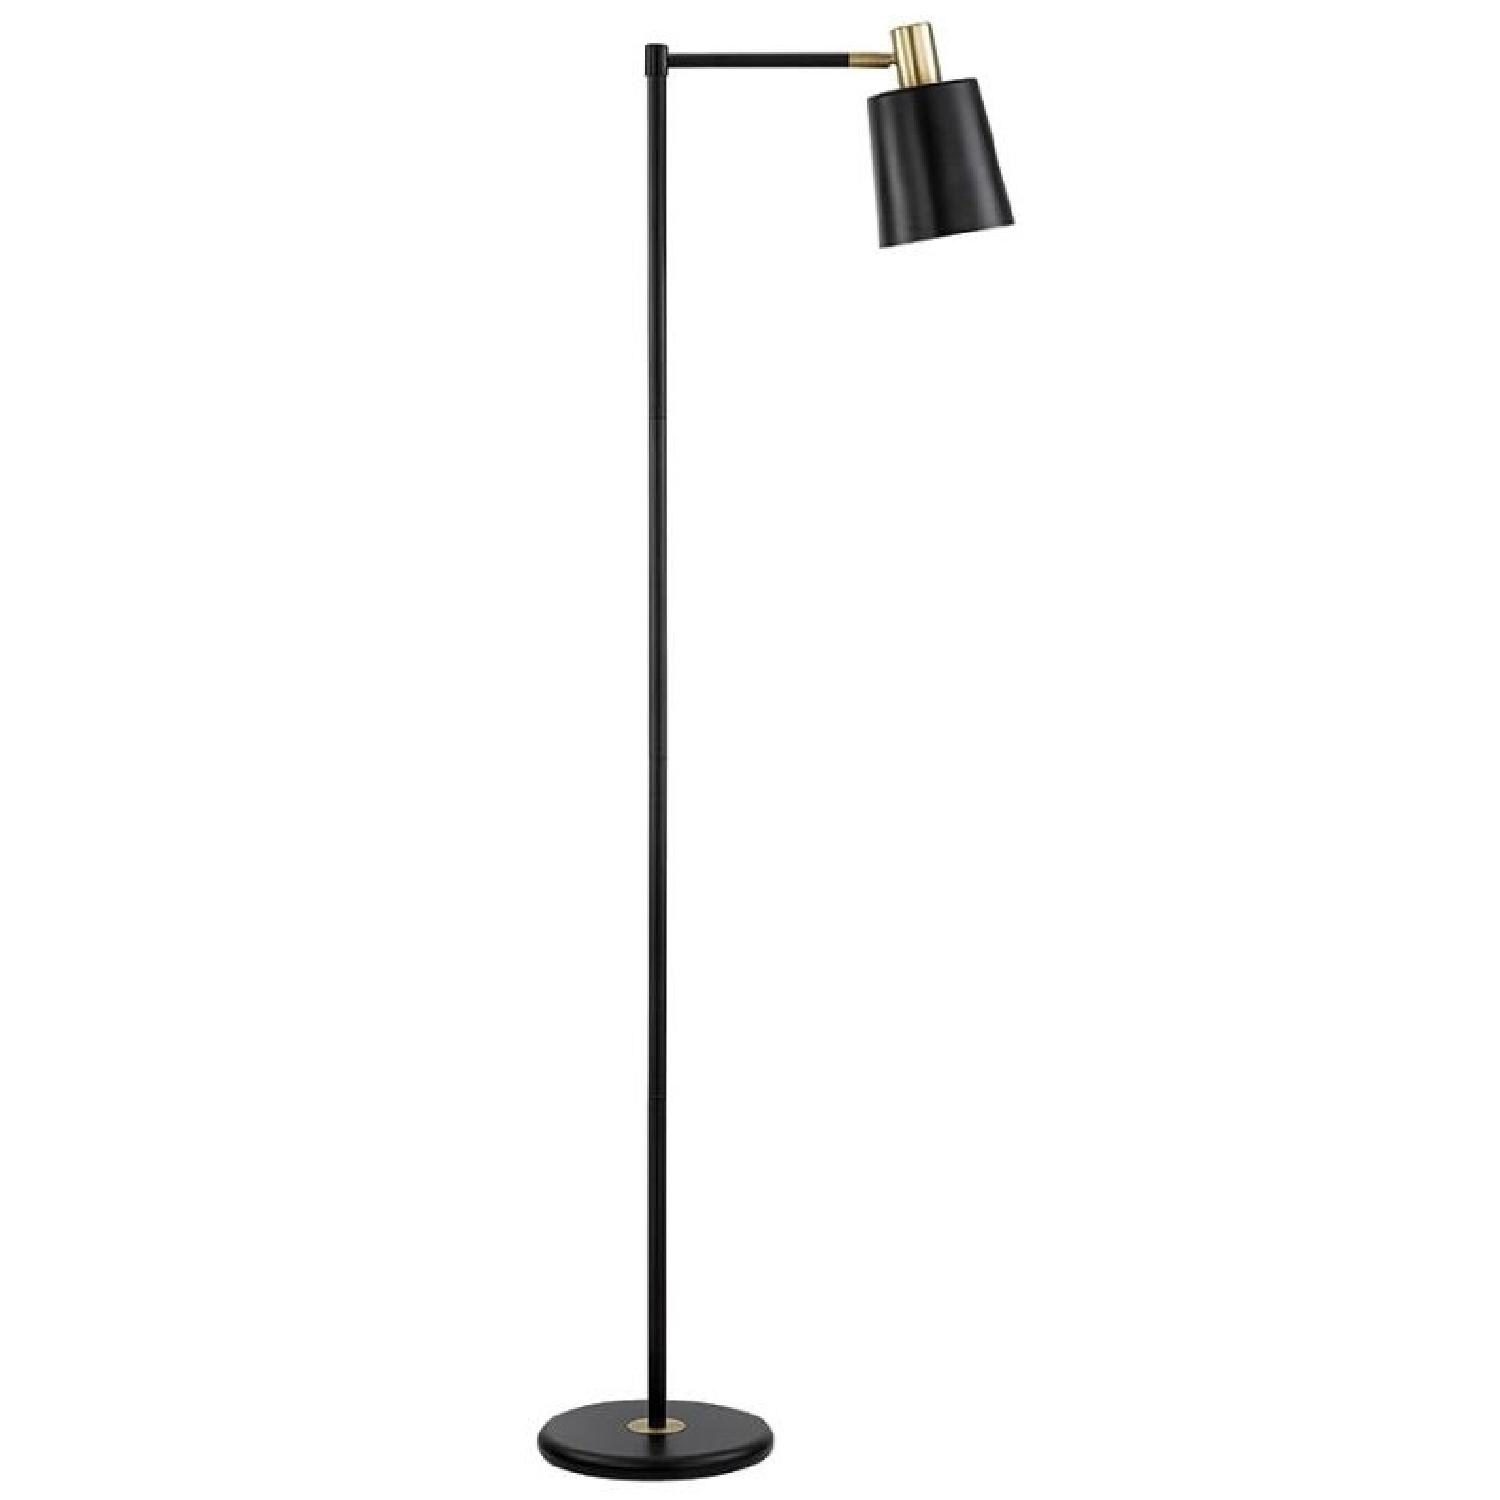 Retro Style Black & Gold Color Floor Lamp - image-2